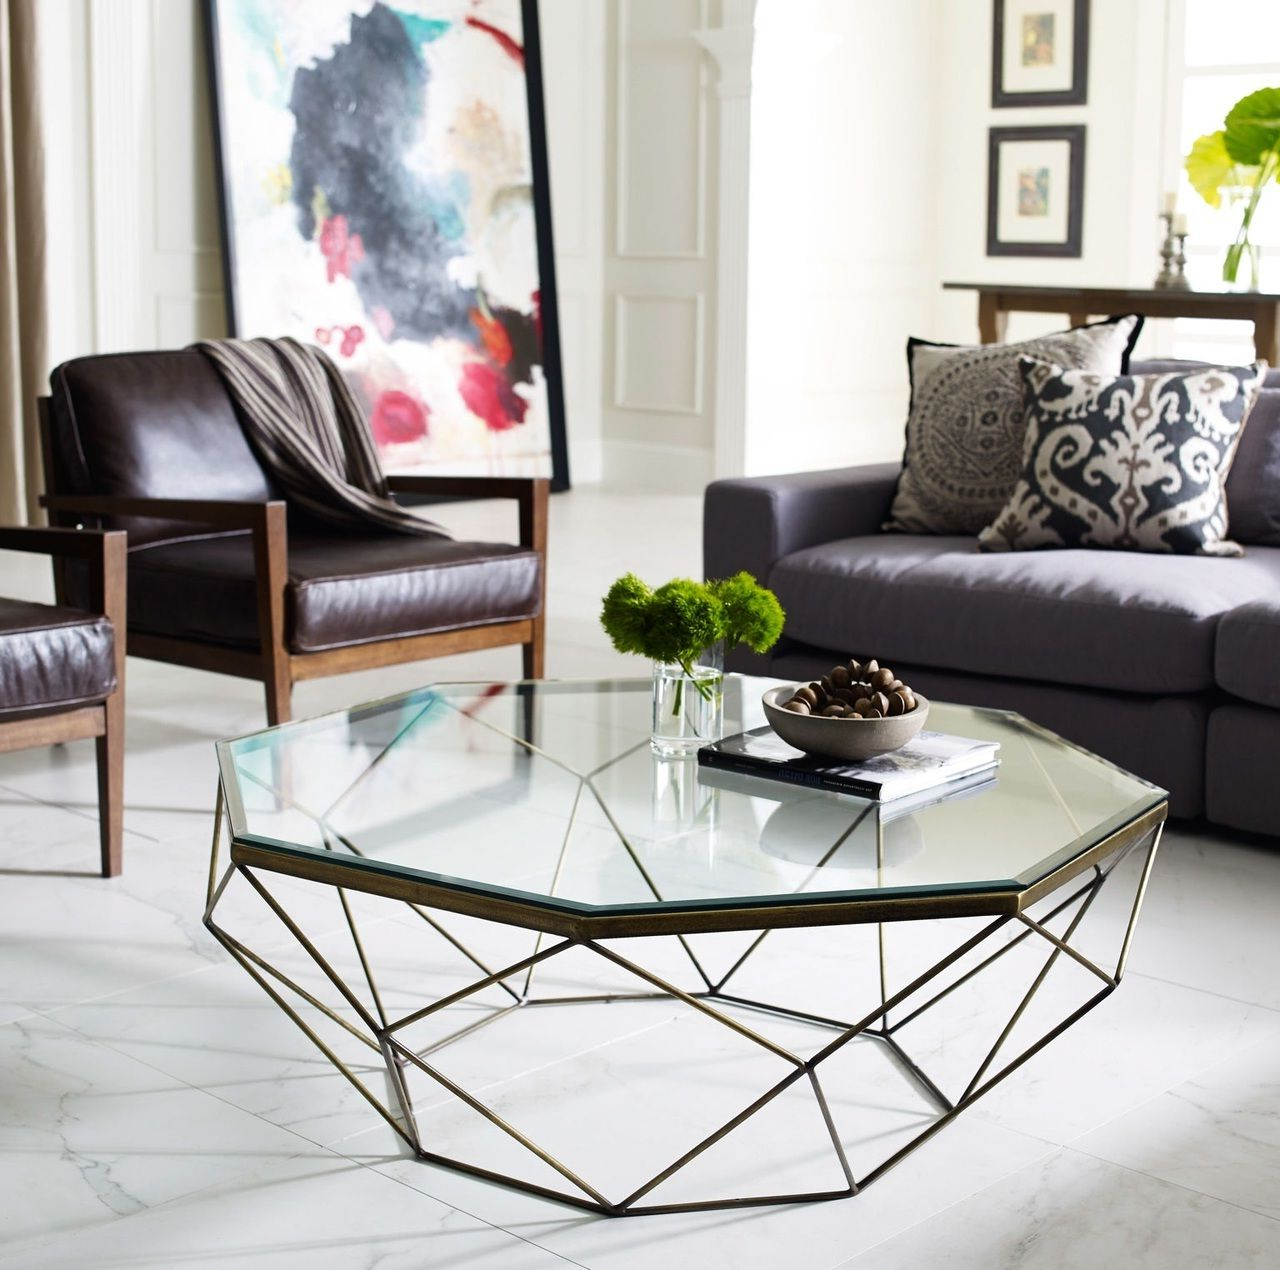 Geometric Antique Brass Coffee Table With Glass Top Regarding Trendy Silver Orchid Ipsen Round Coffee Tables With X Base (Gallery 15 of 20)